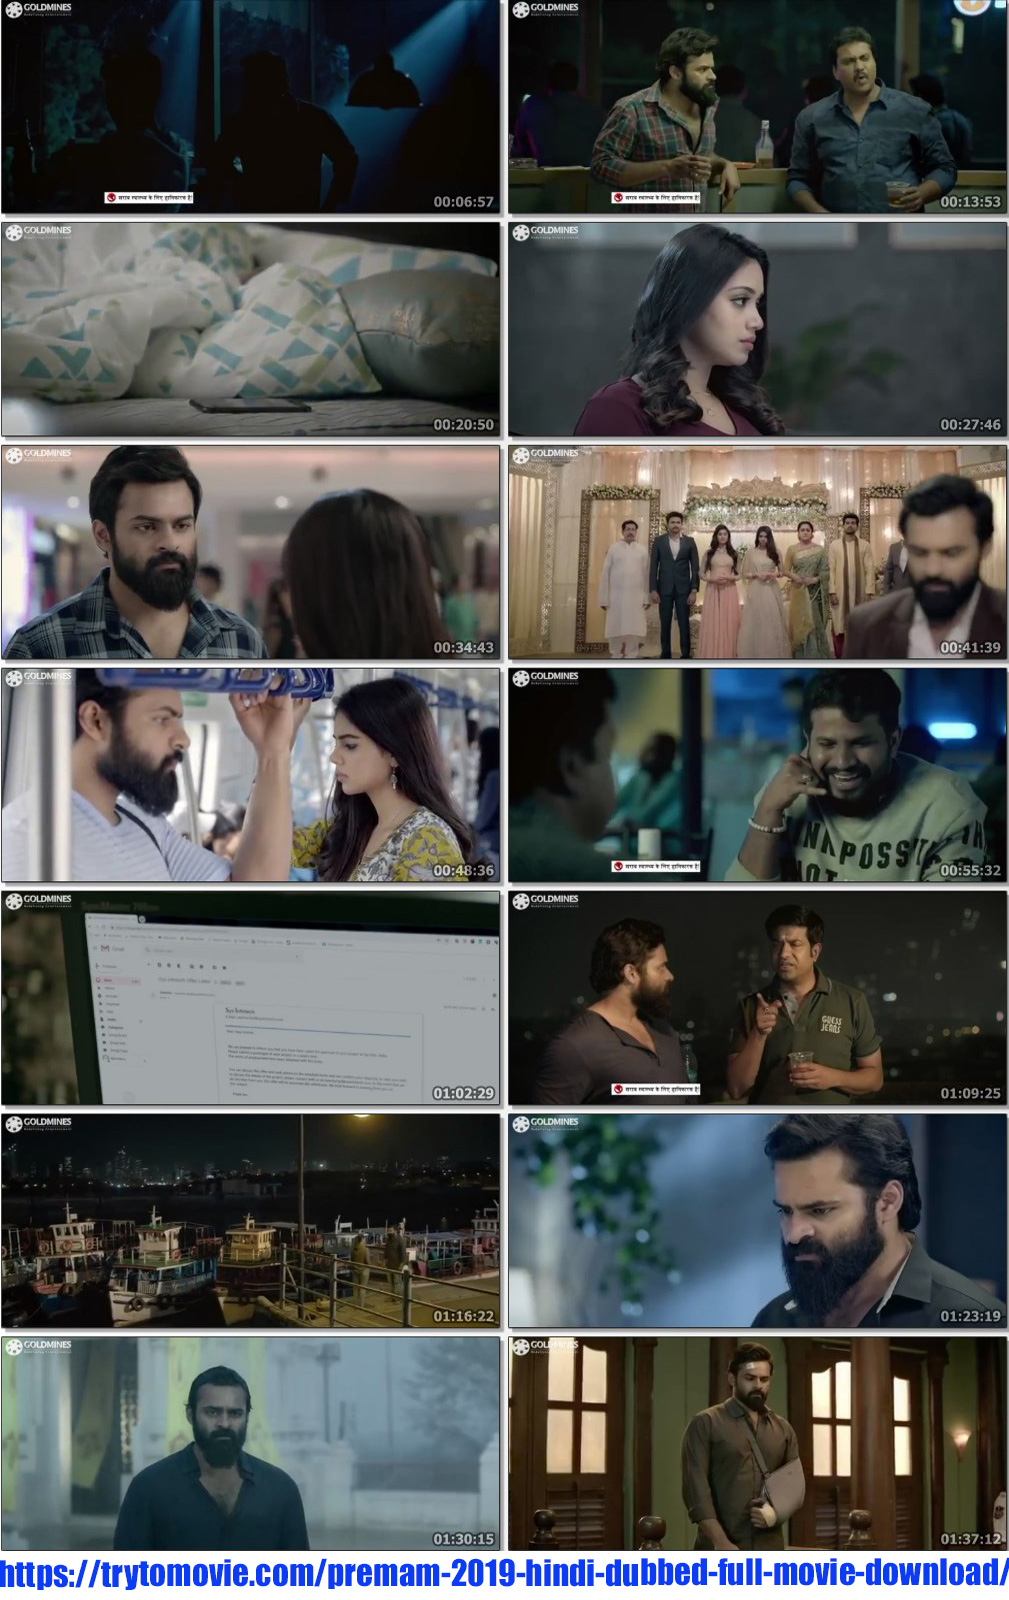 Premam 2019 Hindi Dubbed Full Movie Download